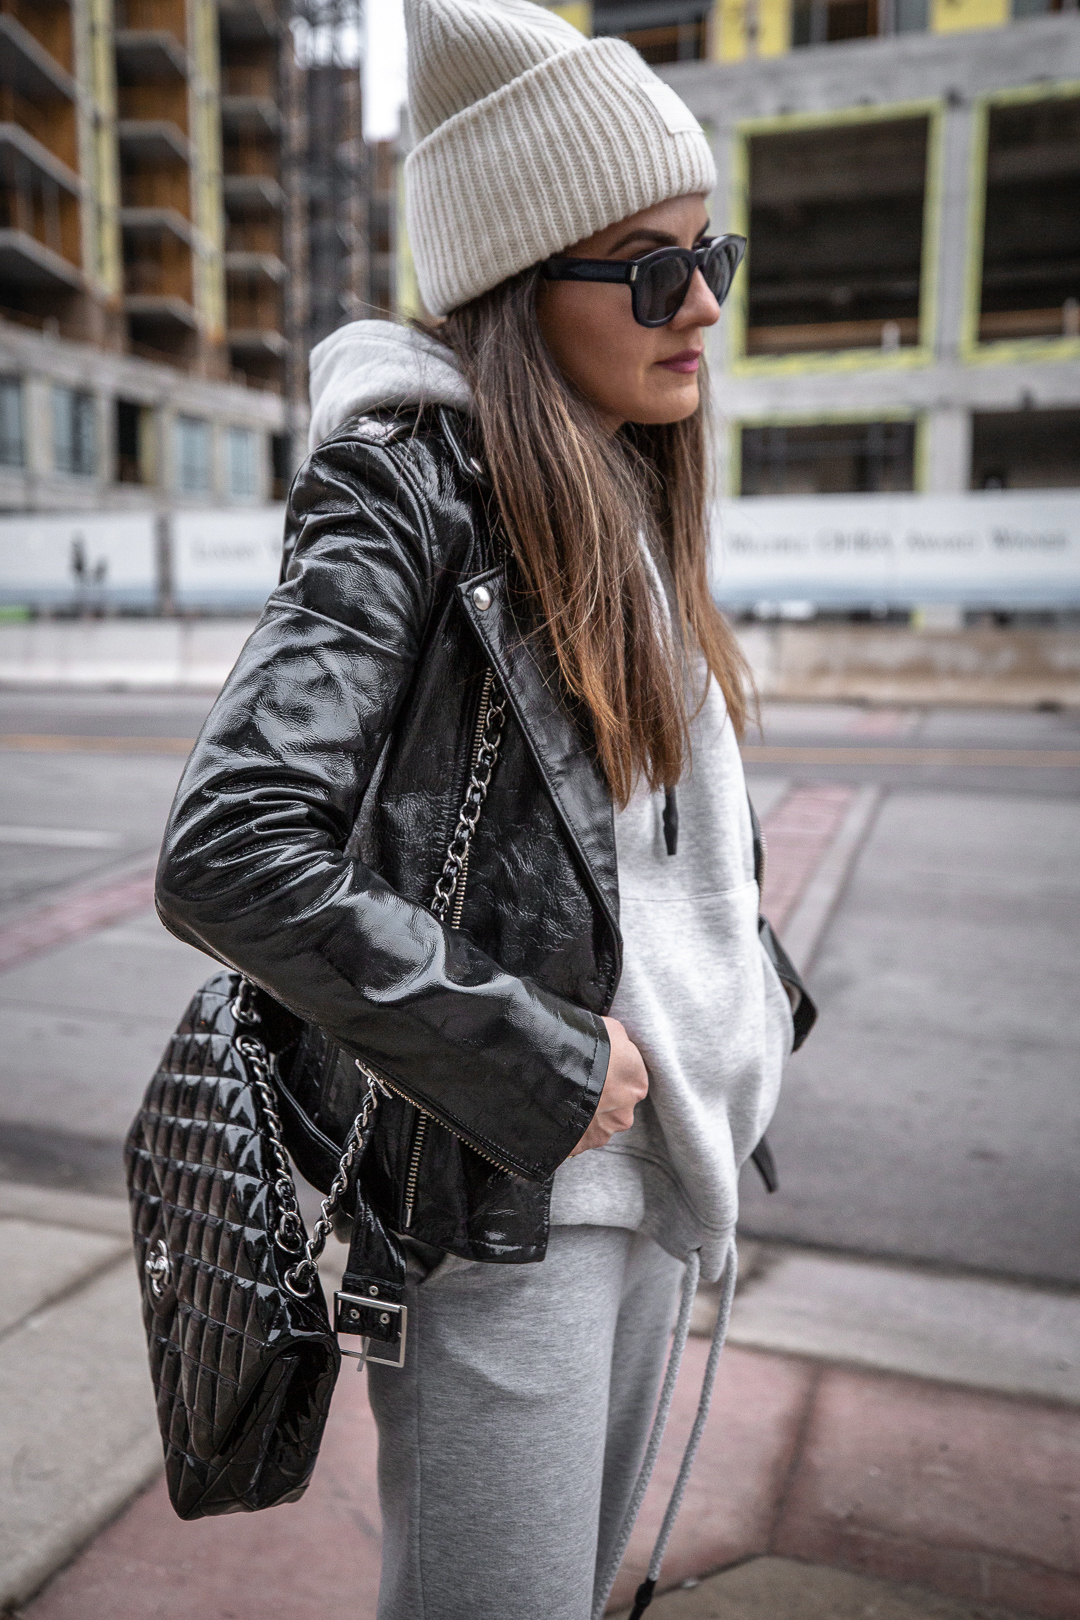 Nathalie Martin - IRO Paris patent leather moto jacket, Zara sweatsuit, grey hoodie and sweatpants, Saint Laurent white canvas logo sneakers, CHANEL patent leather jumbo flap quilted bag, ACNE studios Pansy face beanie hat - woahstyle.com_5571.jpg